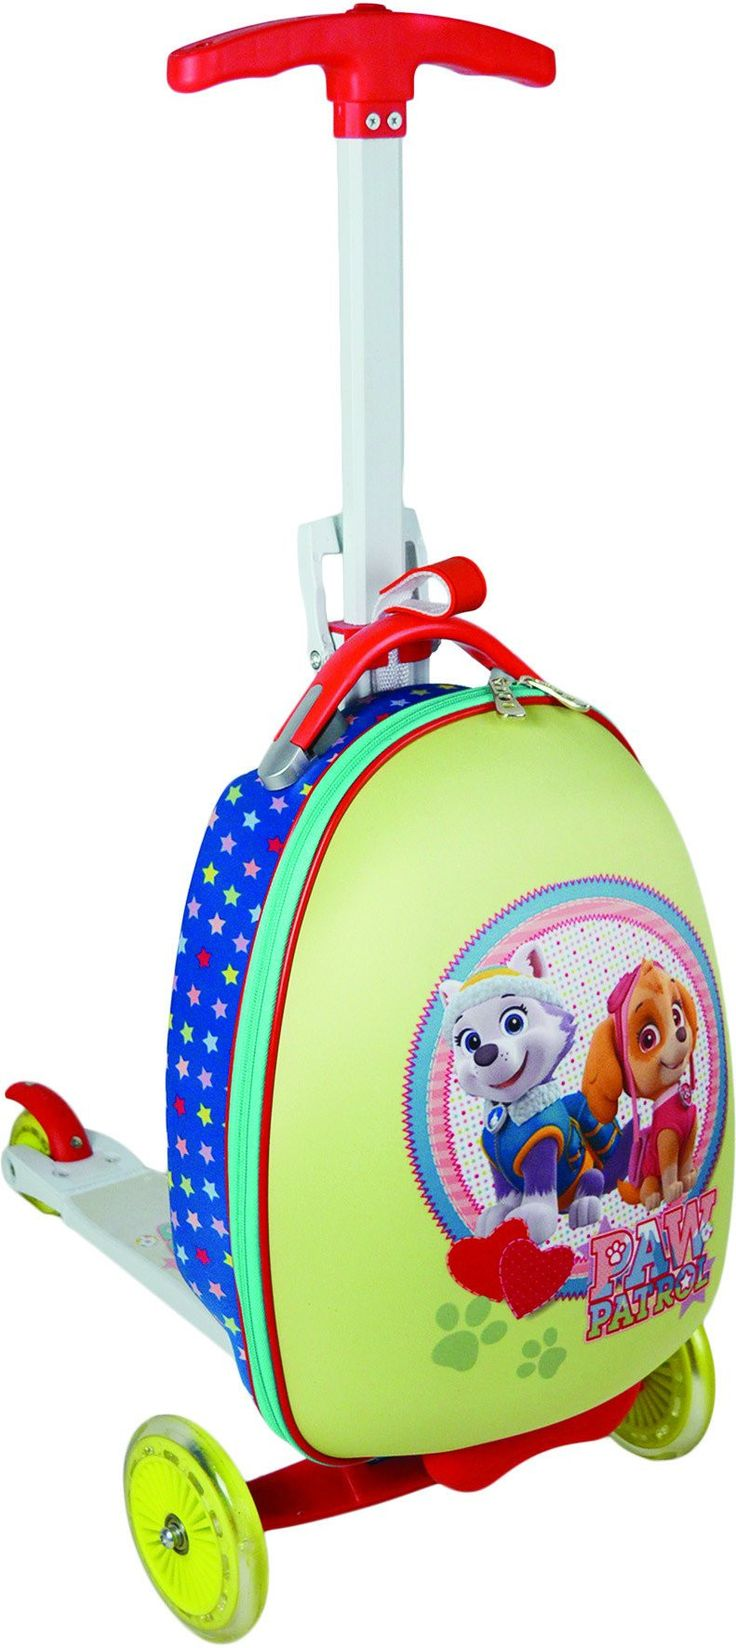 Nickelodeon Paw Patrol 16 inch Girl Pups Children's Scooter Luggage   #wishlist #newarrivals #toyabella #laborday2016 #holiday #christmas2016